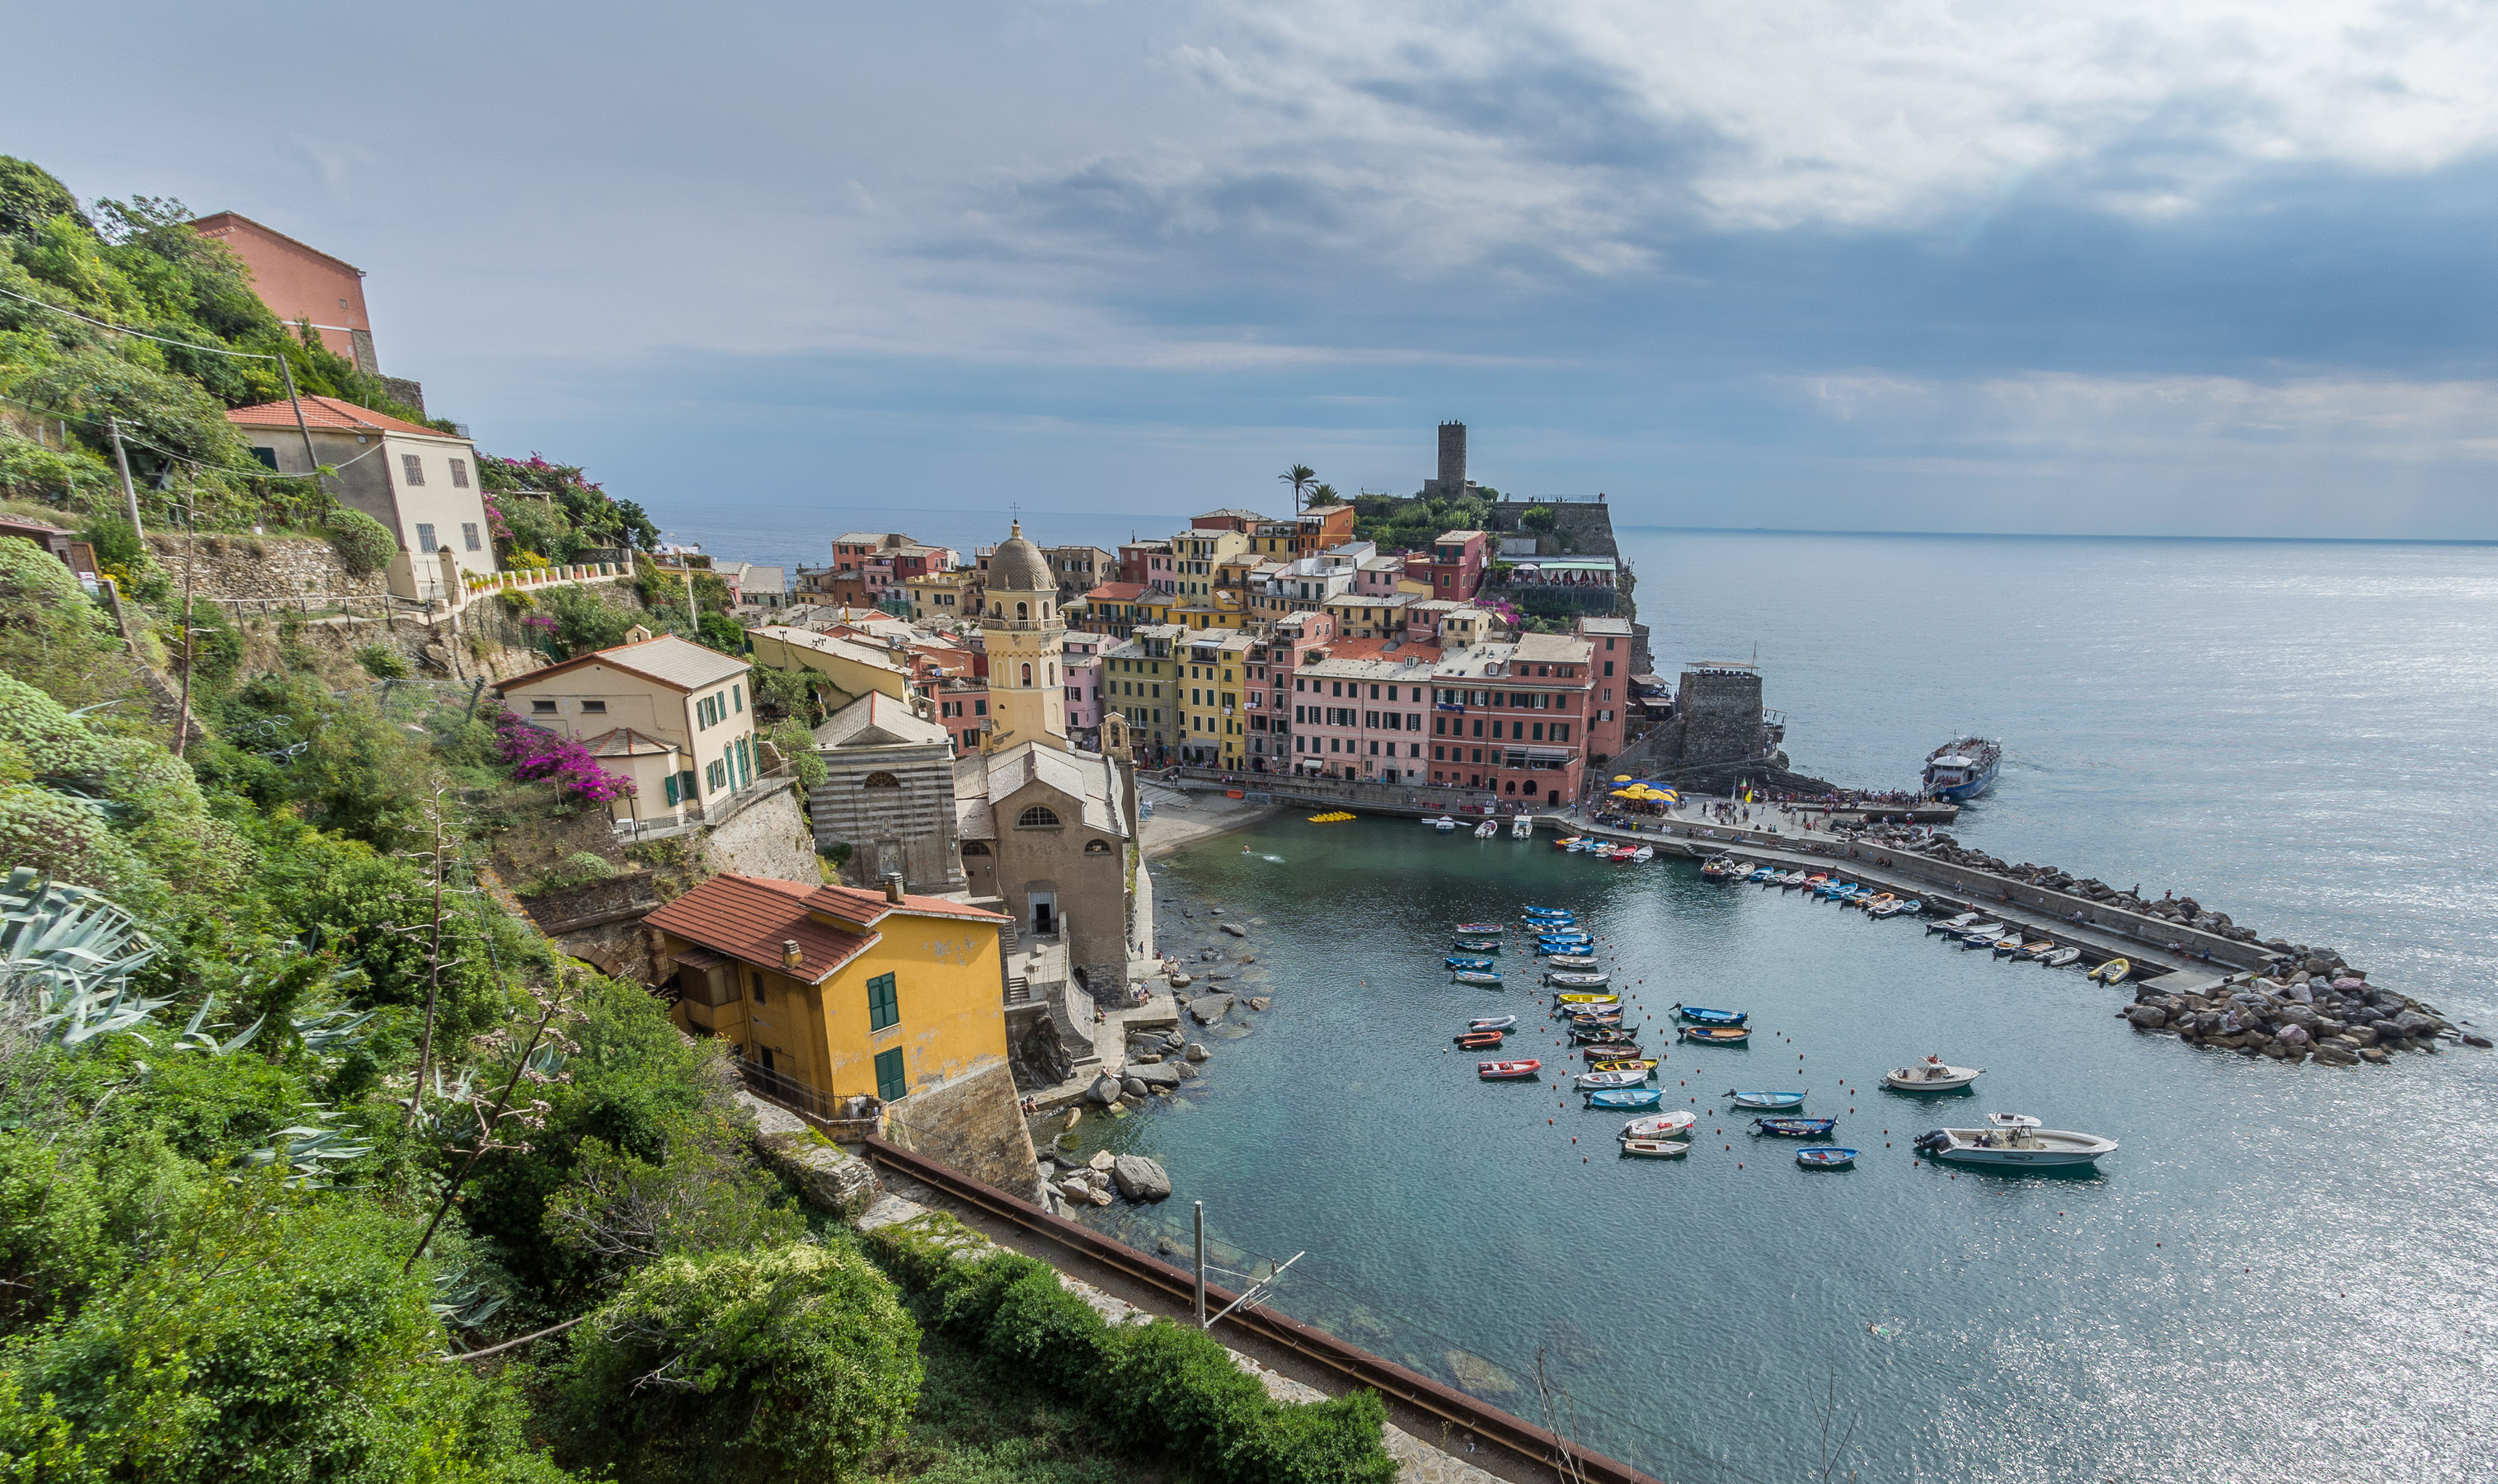 Coast, Culture, Europe, Florence, HDR, Italy, Sea, Travel, Tuscany, Water